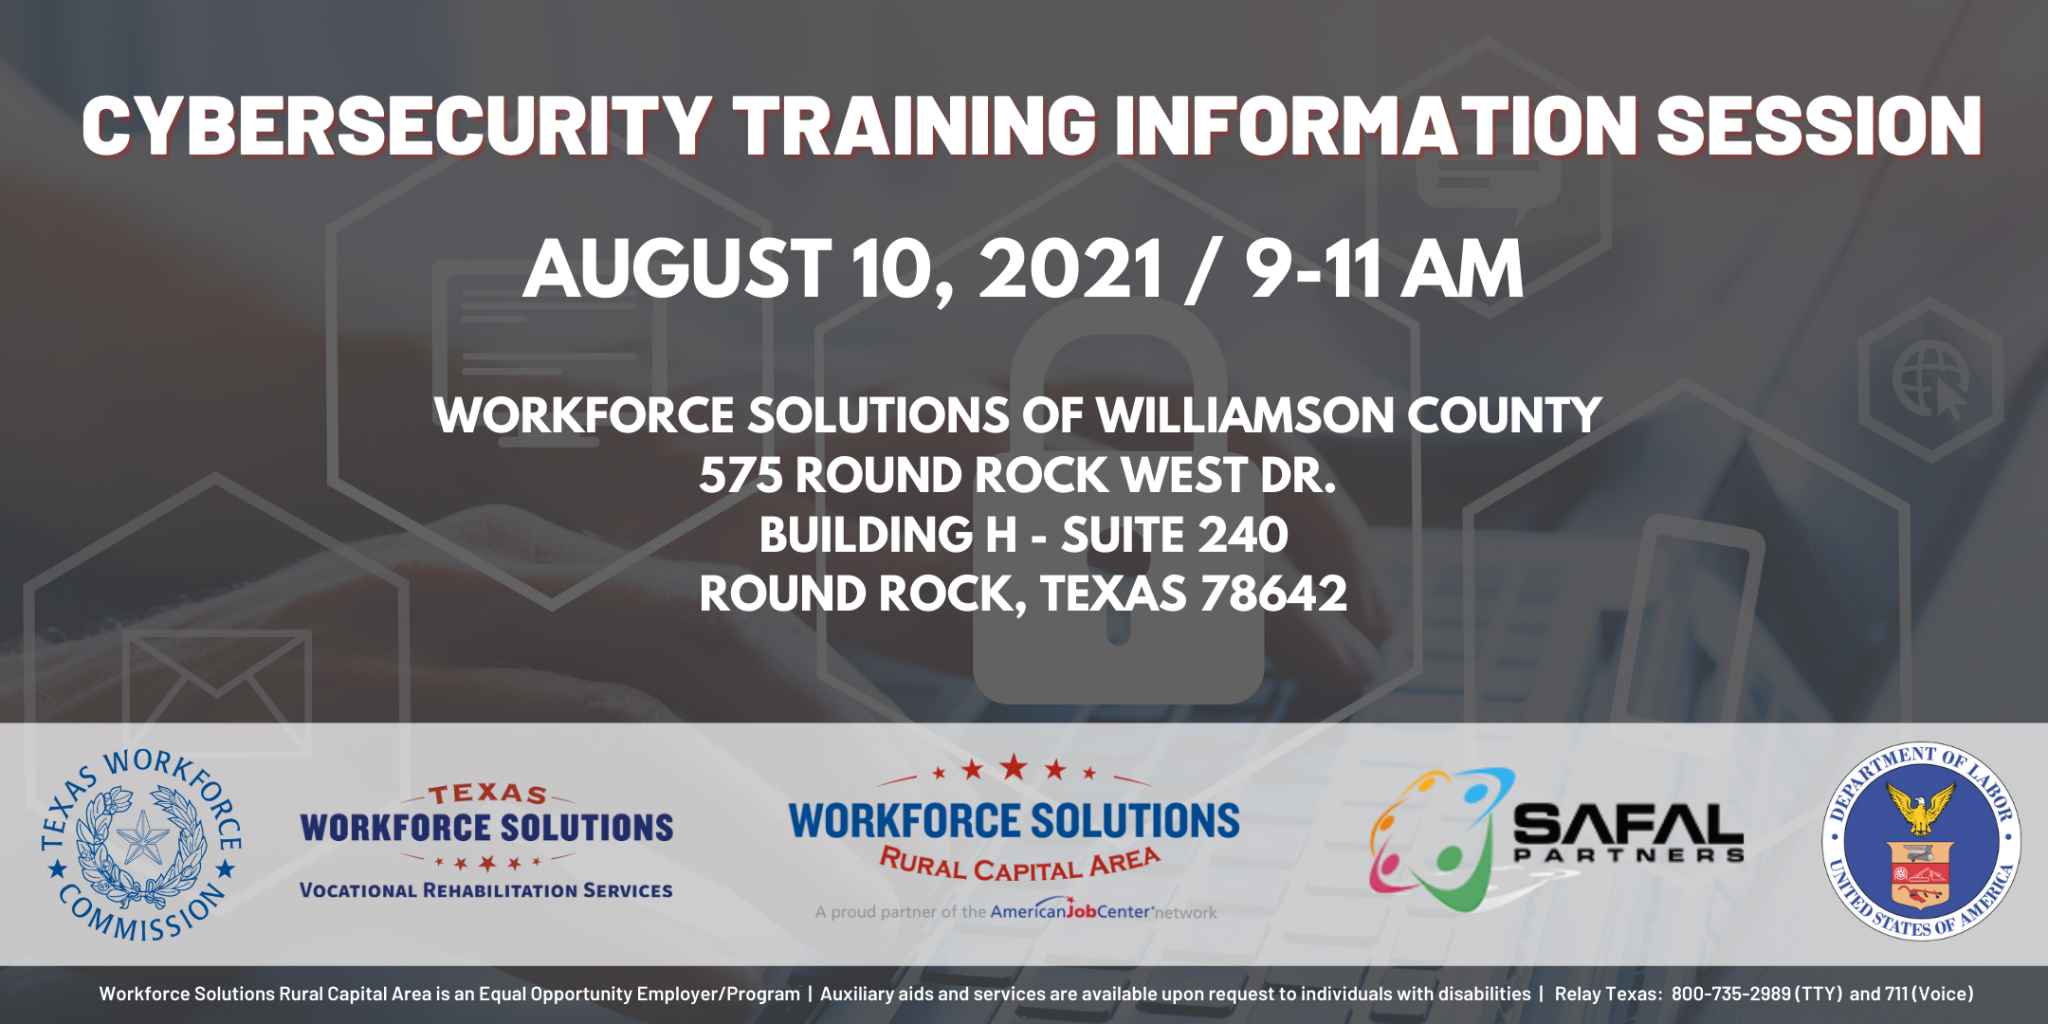 Cybersecurity Training Information Session